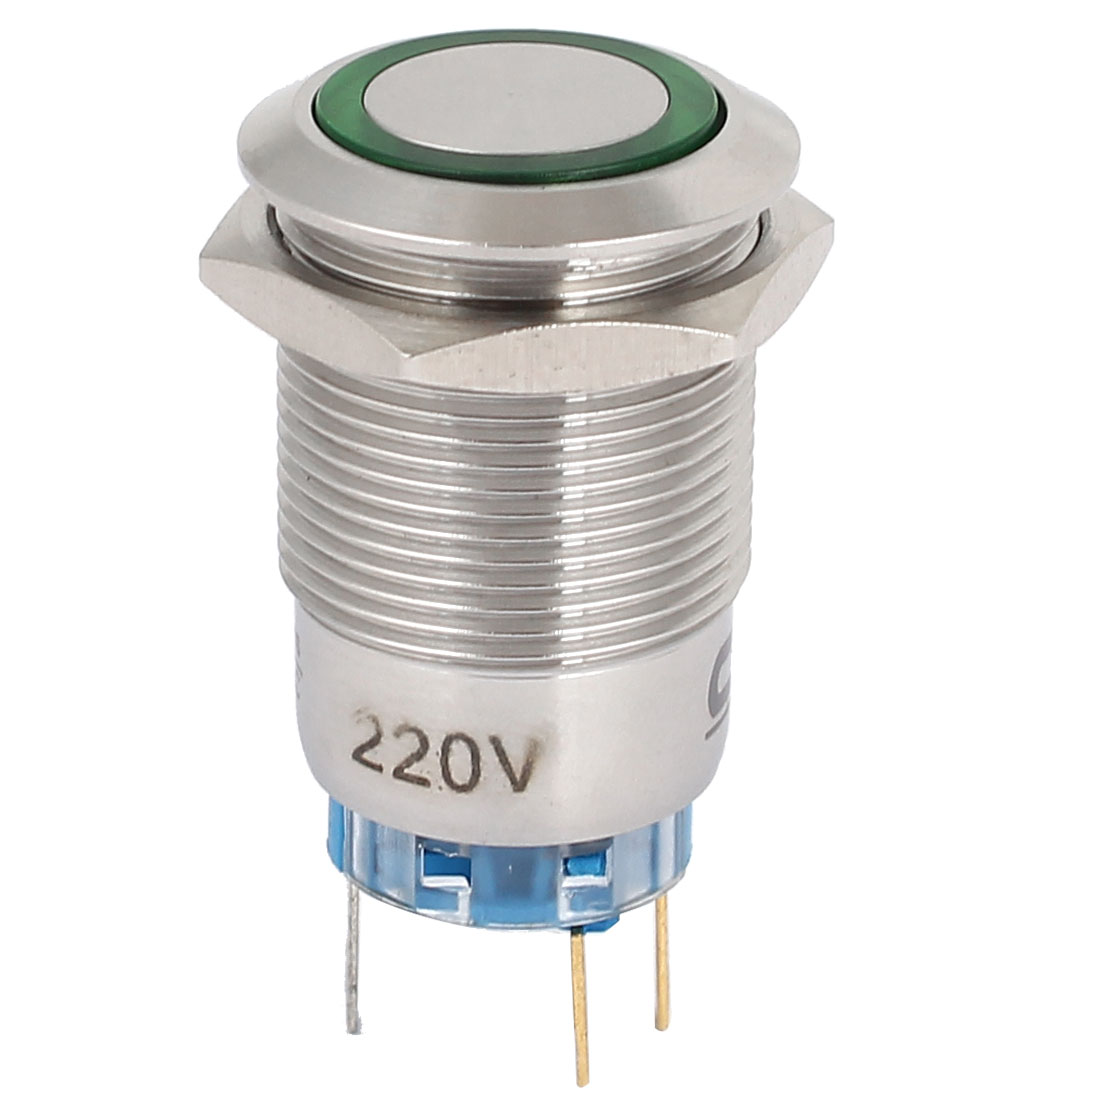 220V 19mm Dia Thread Green LED Angle Eyes Momentary Metal Pushbutton Switch